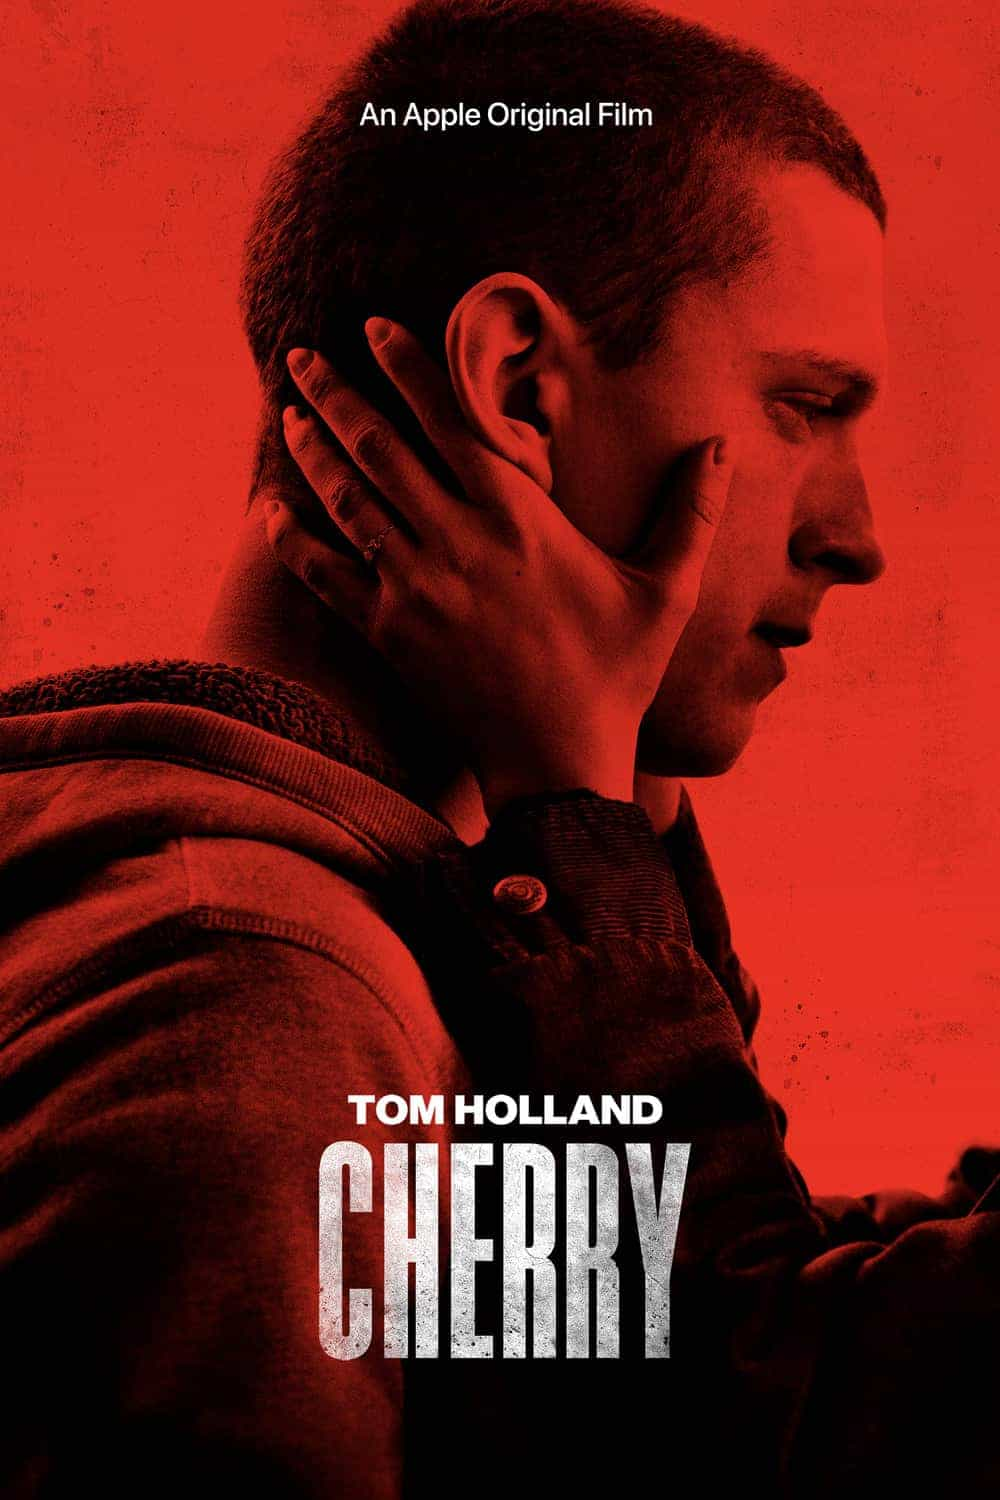 Apple TV release a trailer for their upcoming movie Cherry, directed by The Russo Brothers and starring Tom Holland